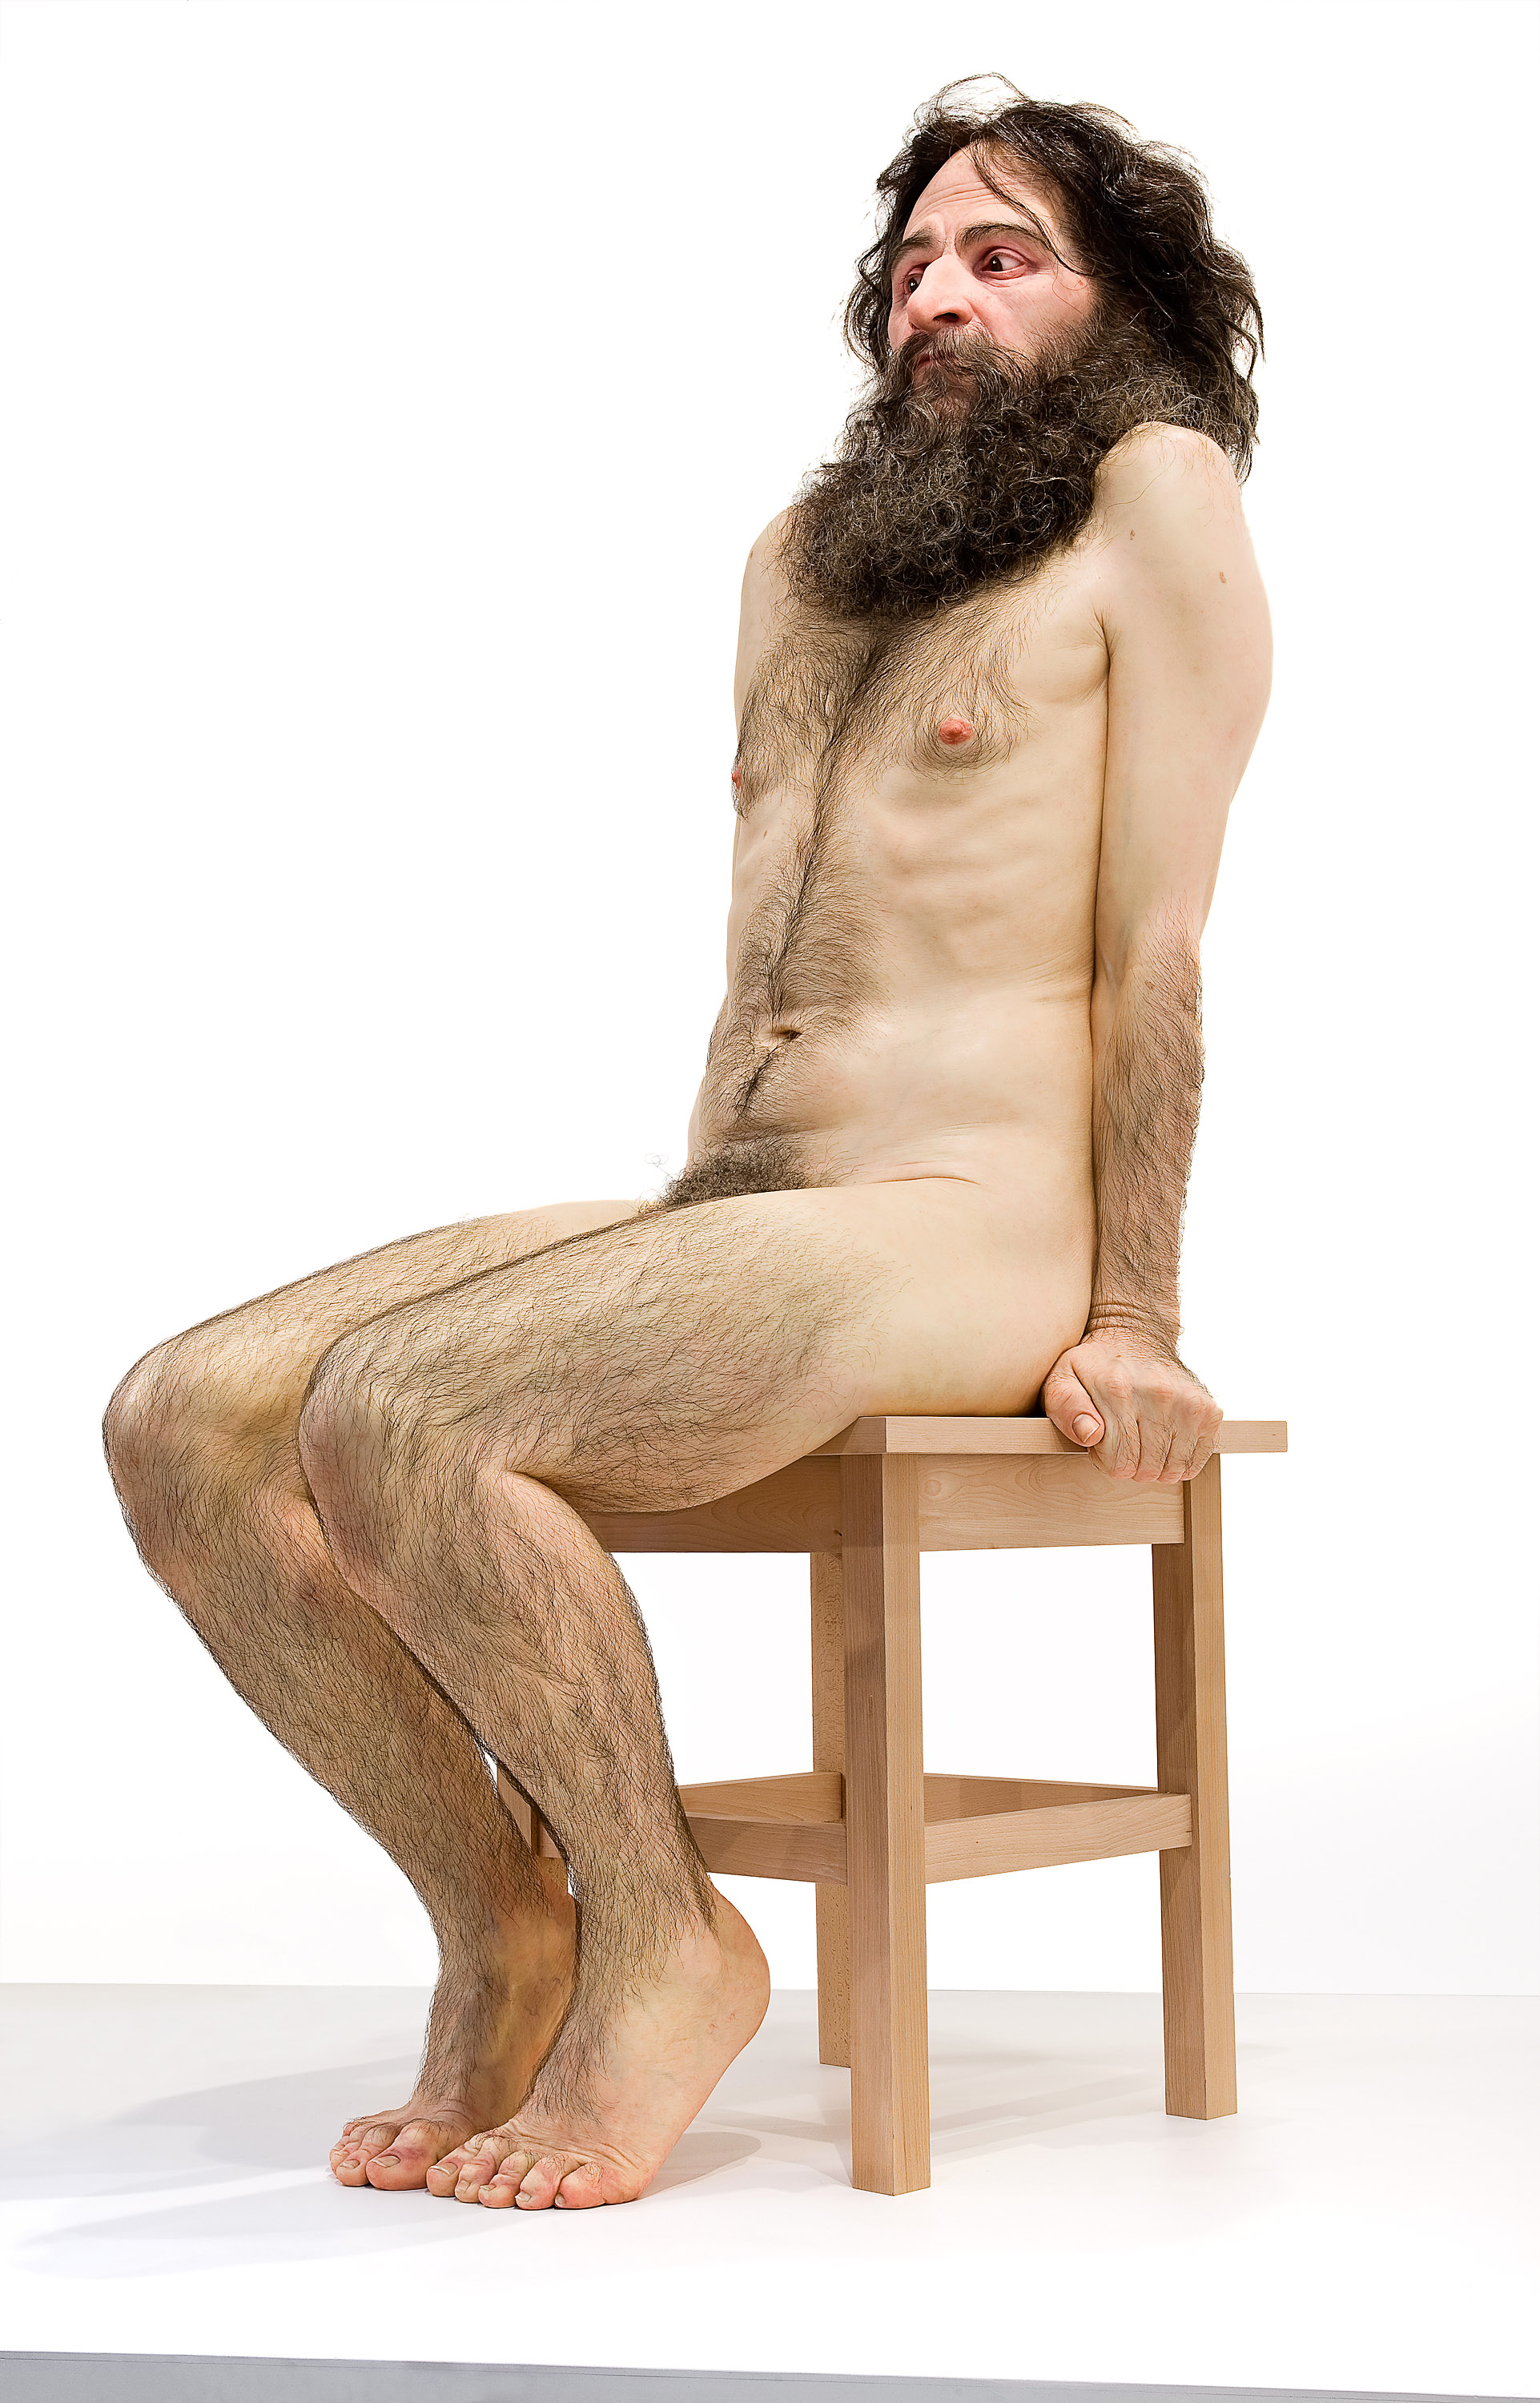 Day 15: Leah Cim in Ogling Ron Mueck's Sculptures « 151 Days Off